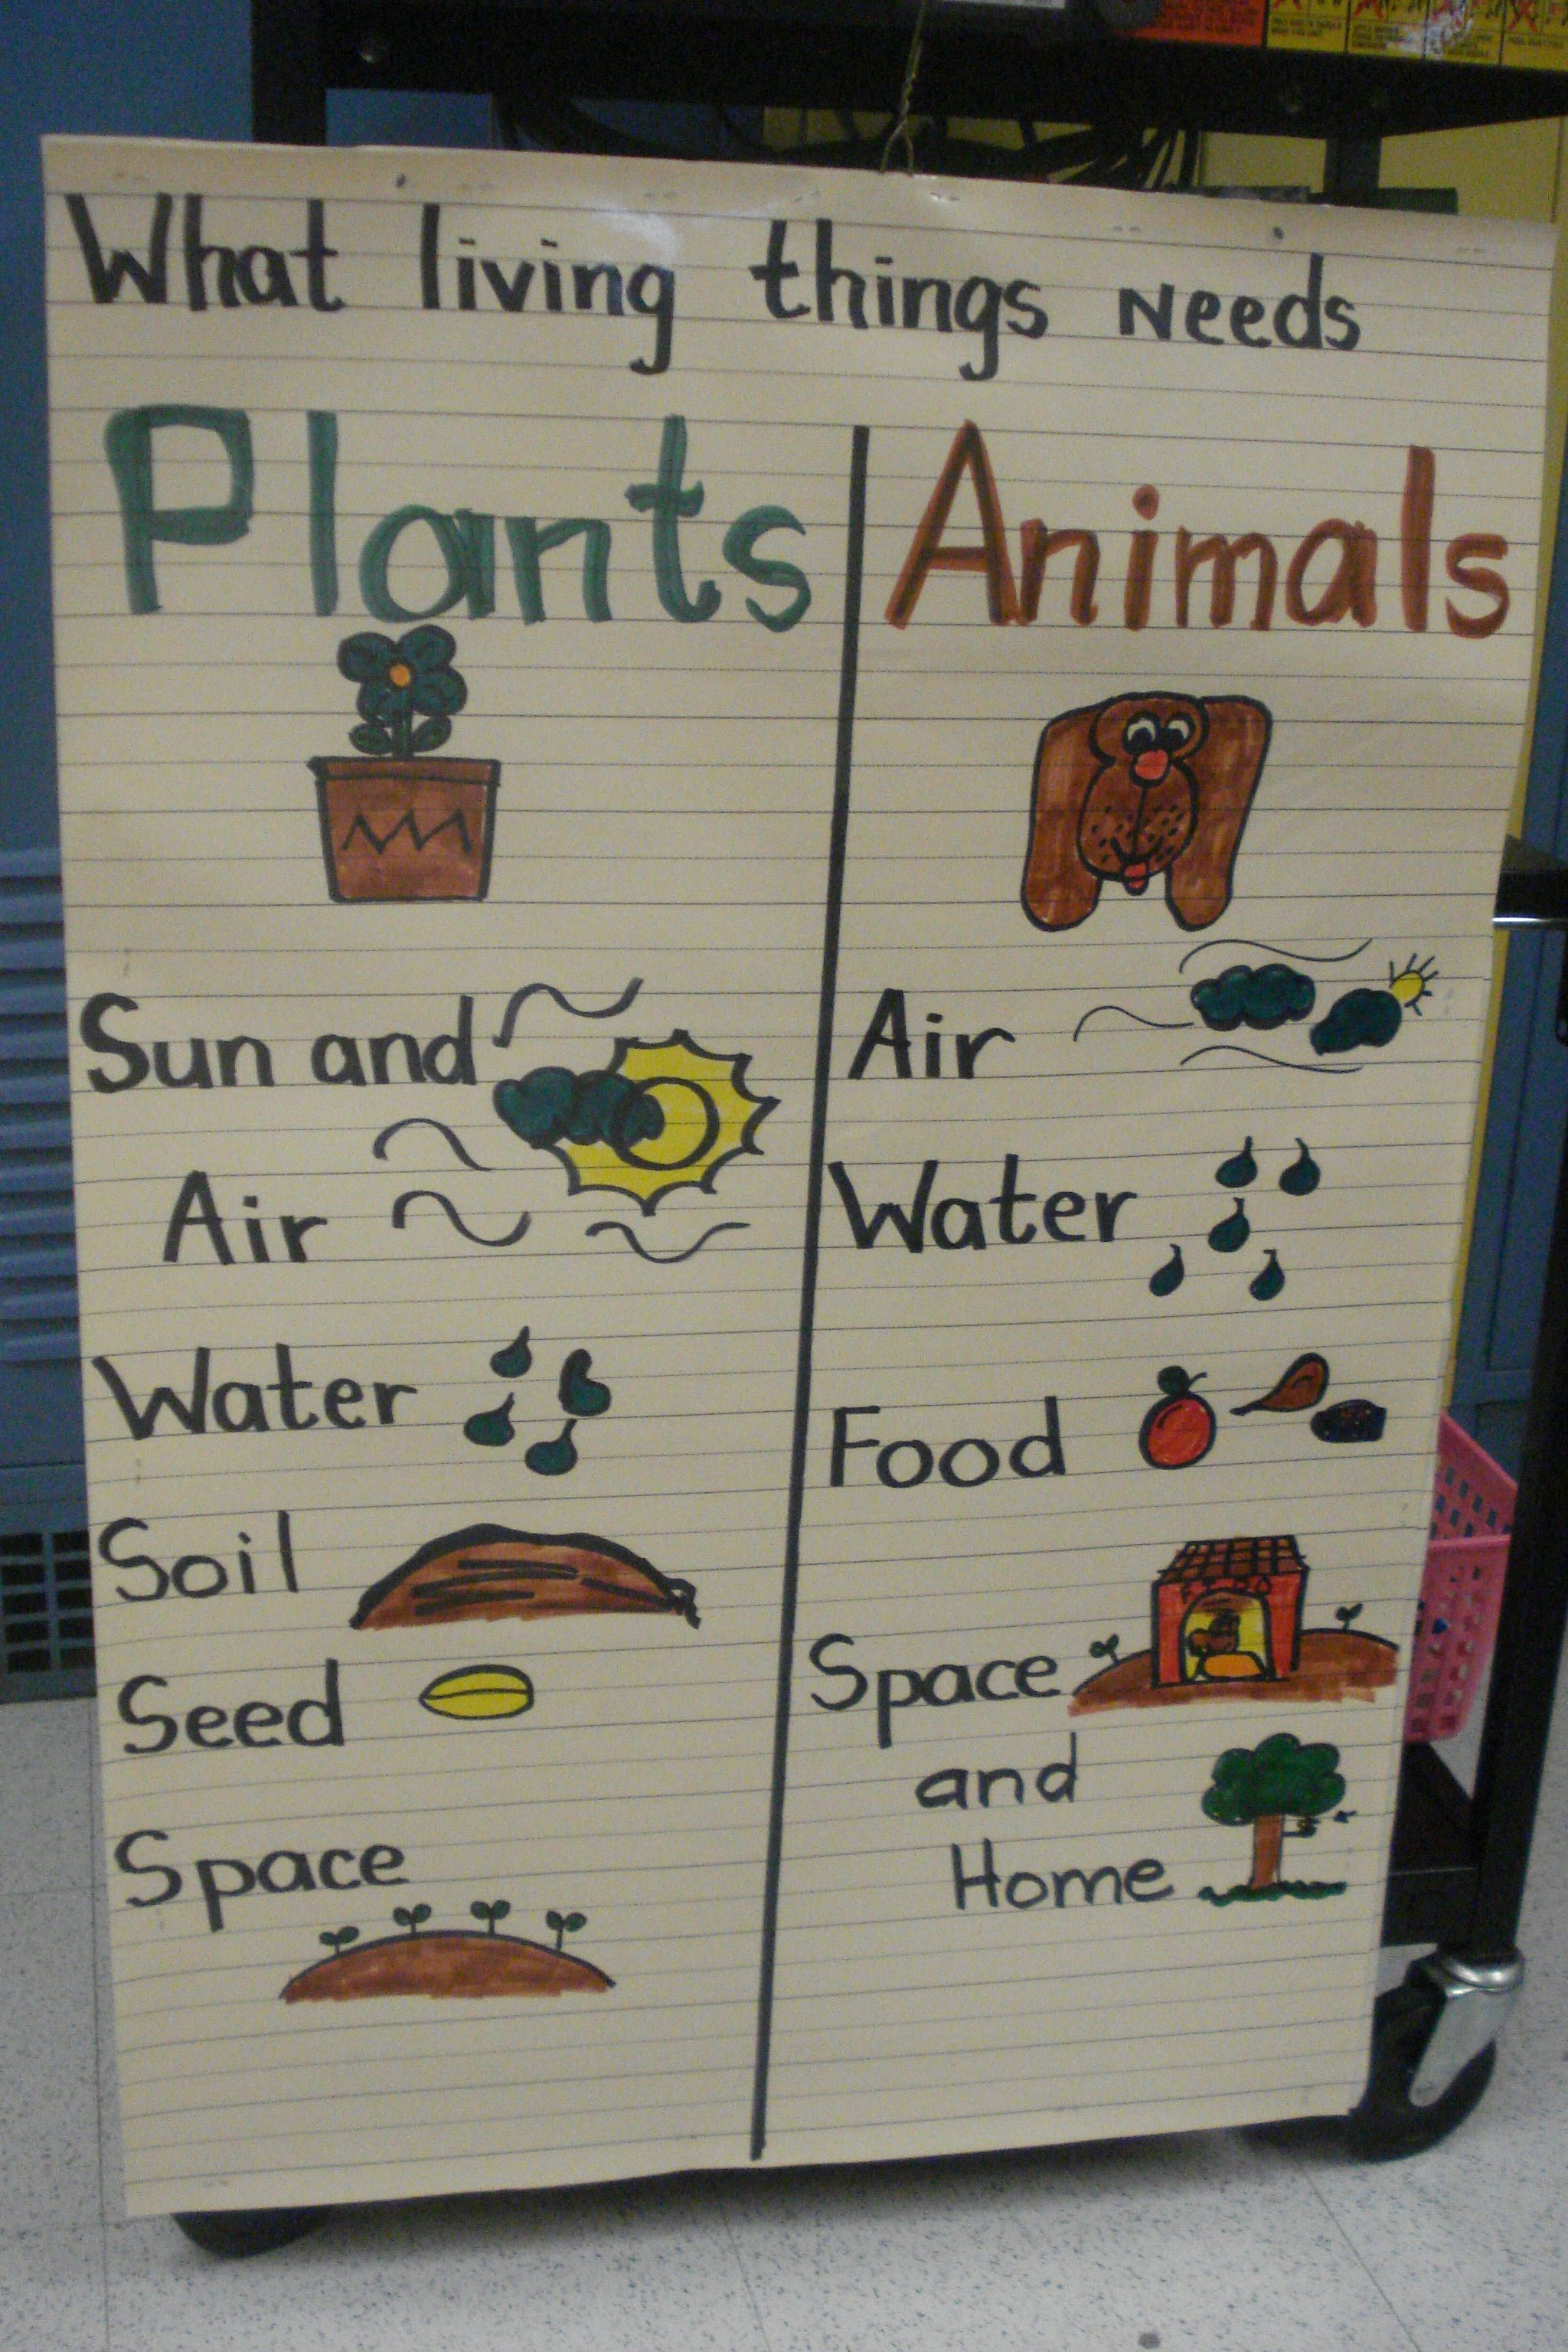 Plants and Animals NEEDS anchor chart | Kindergarten ...